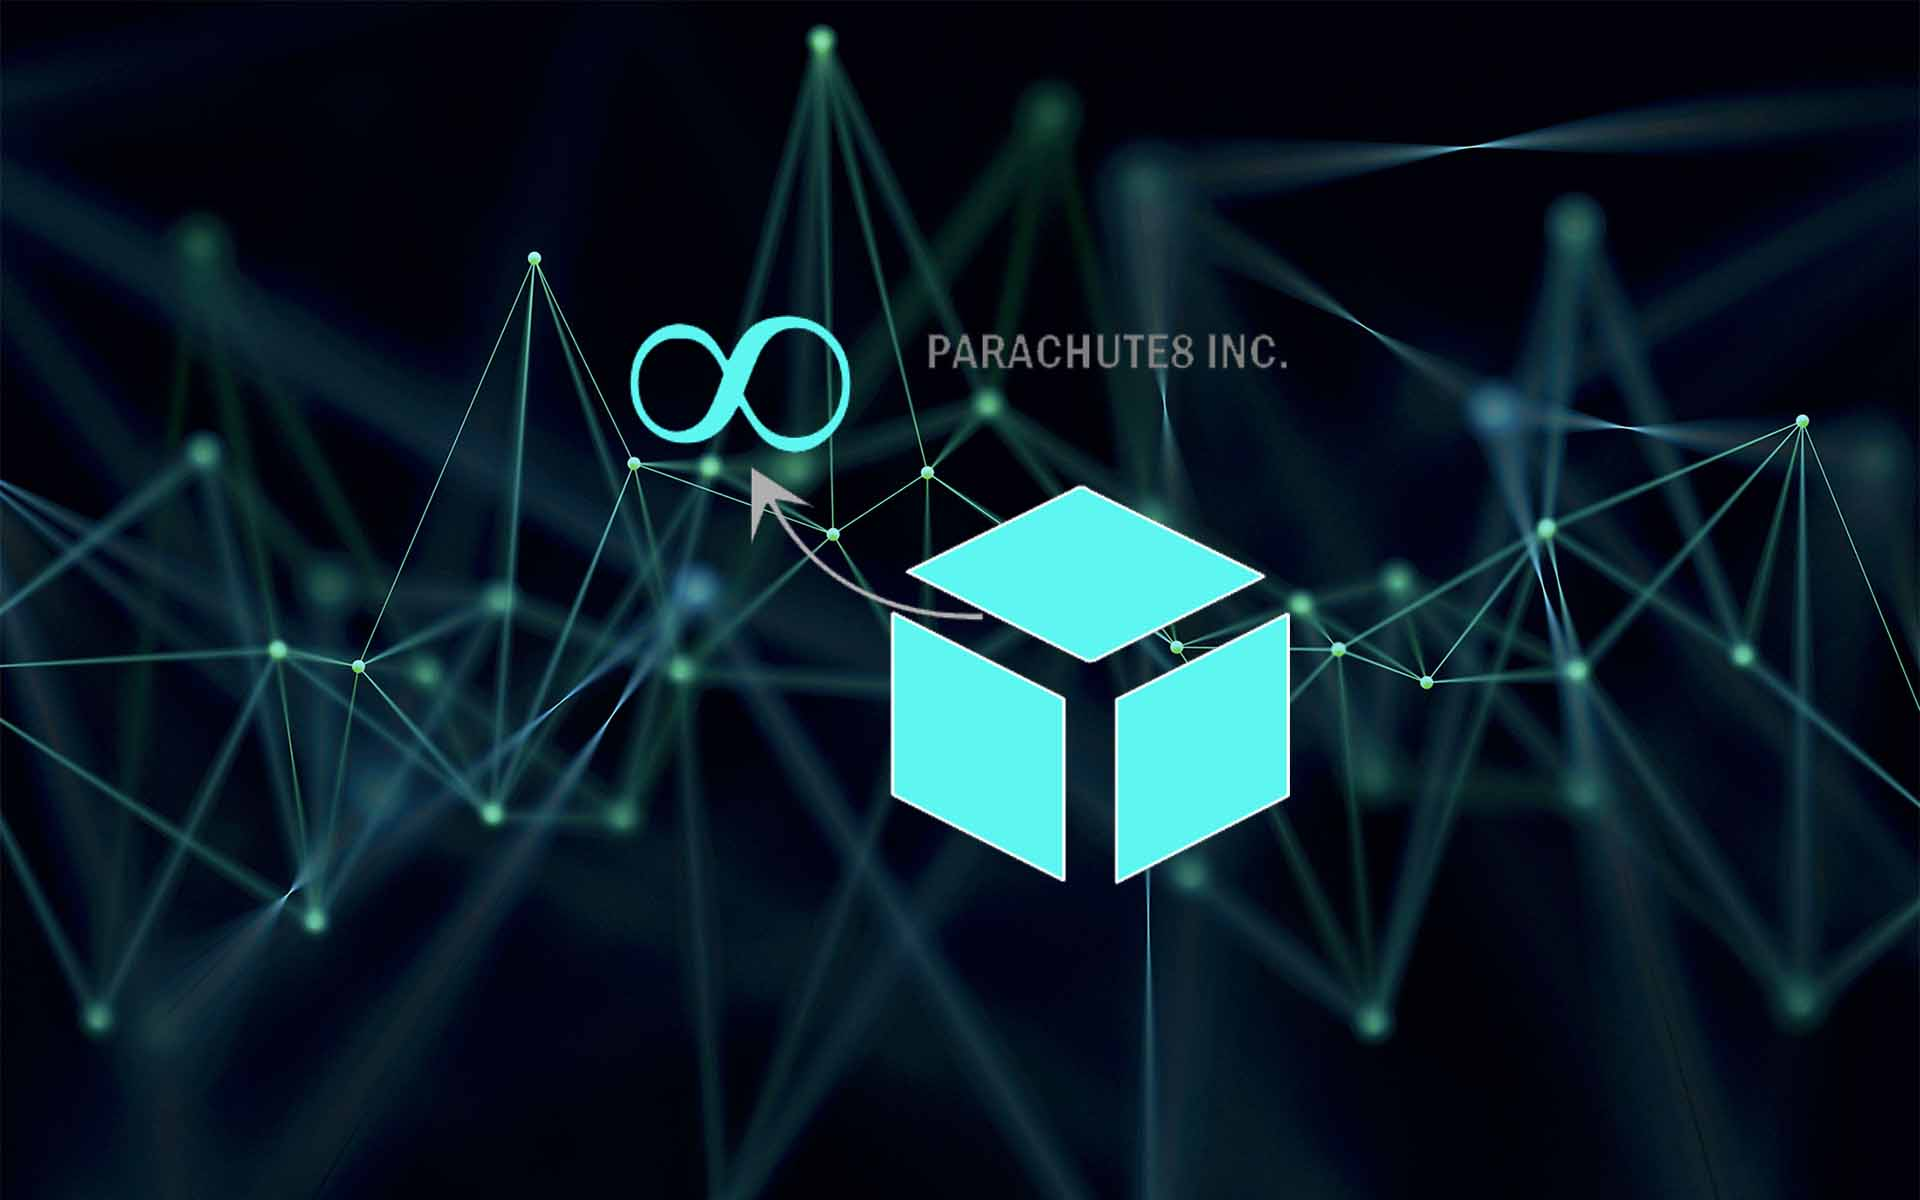 Parachute8 Readies For ICO Pre-Sale - Proprietary Algorithms Provide Security to Participating Individuals and Companies